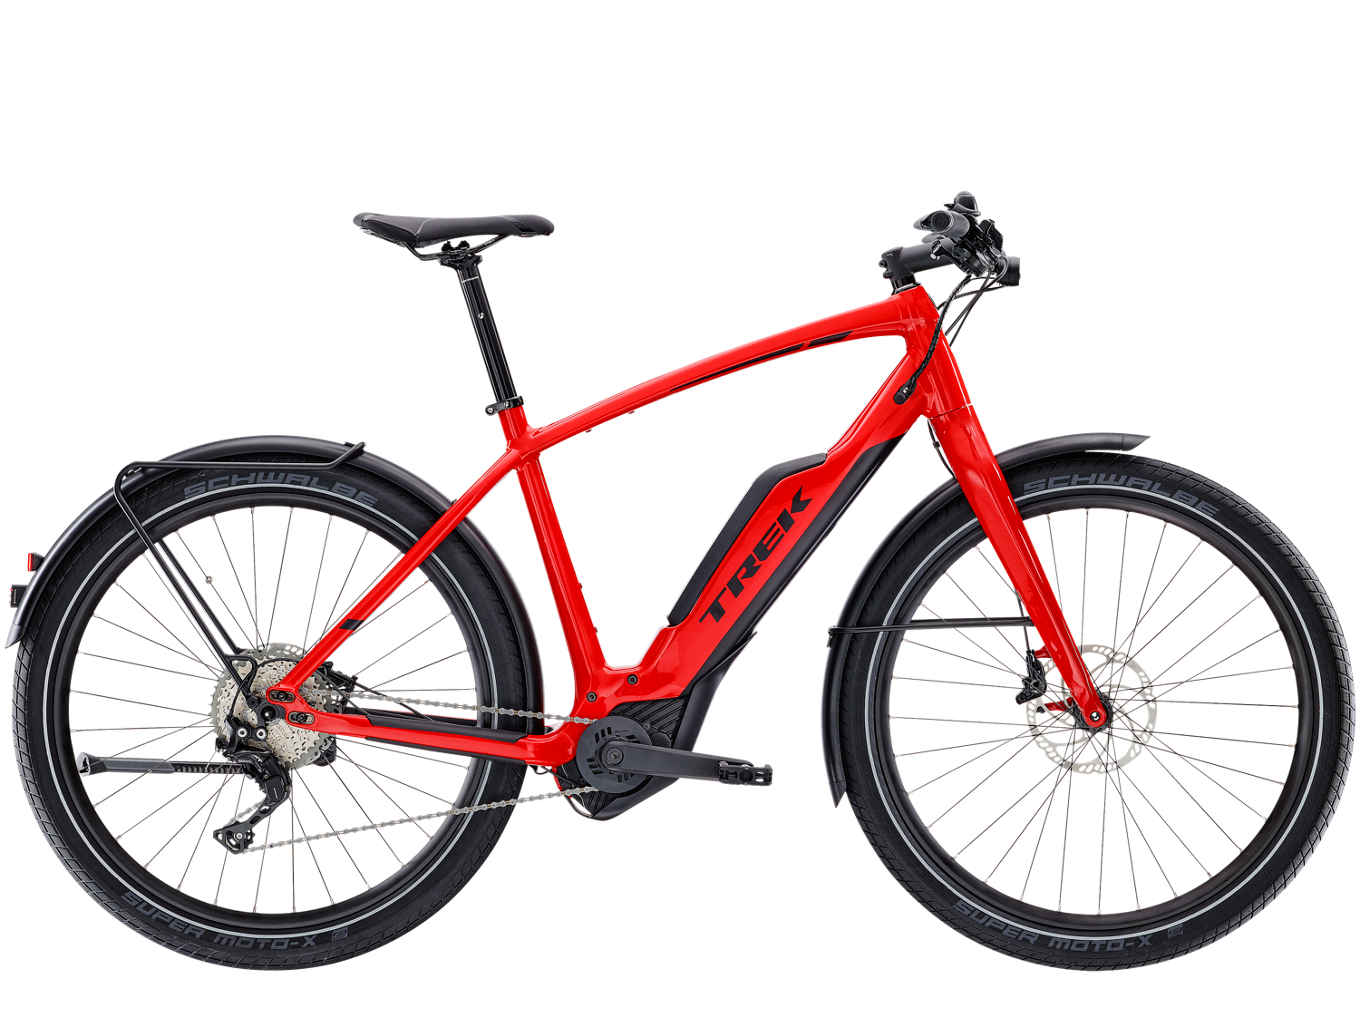 La urban ebike Trek Super Commuter+ 8 (trekbikes)